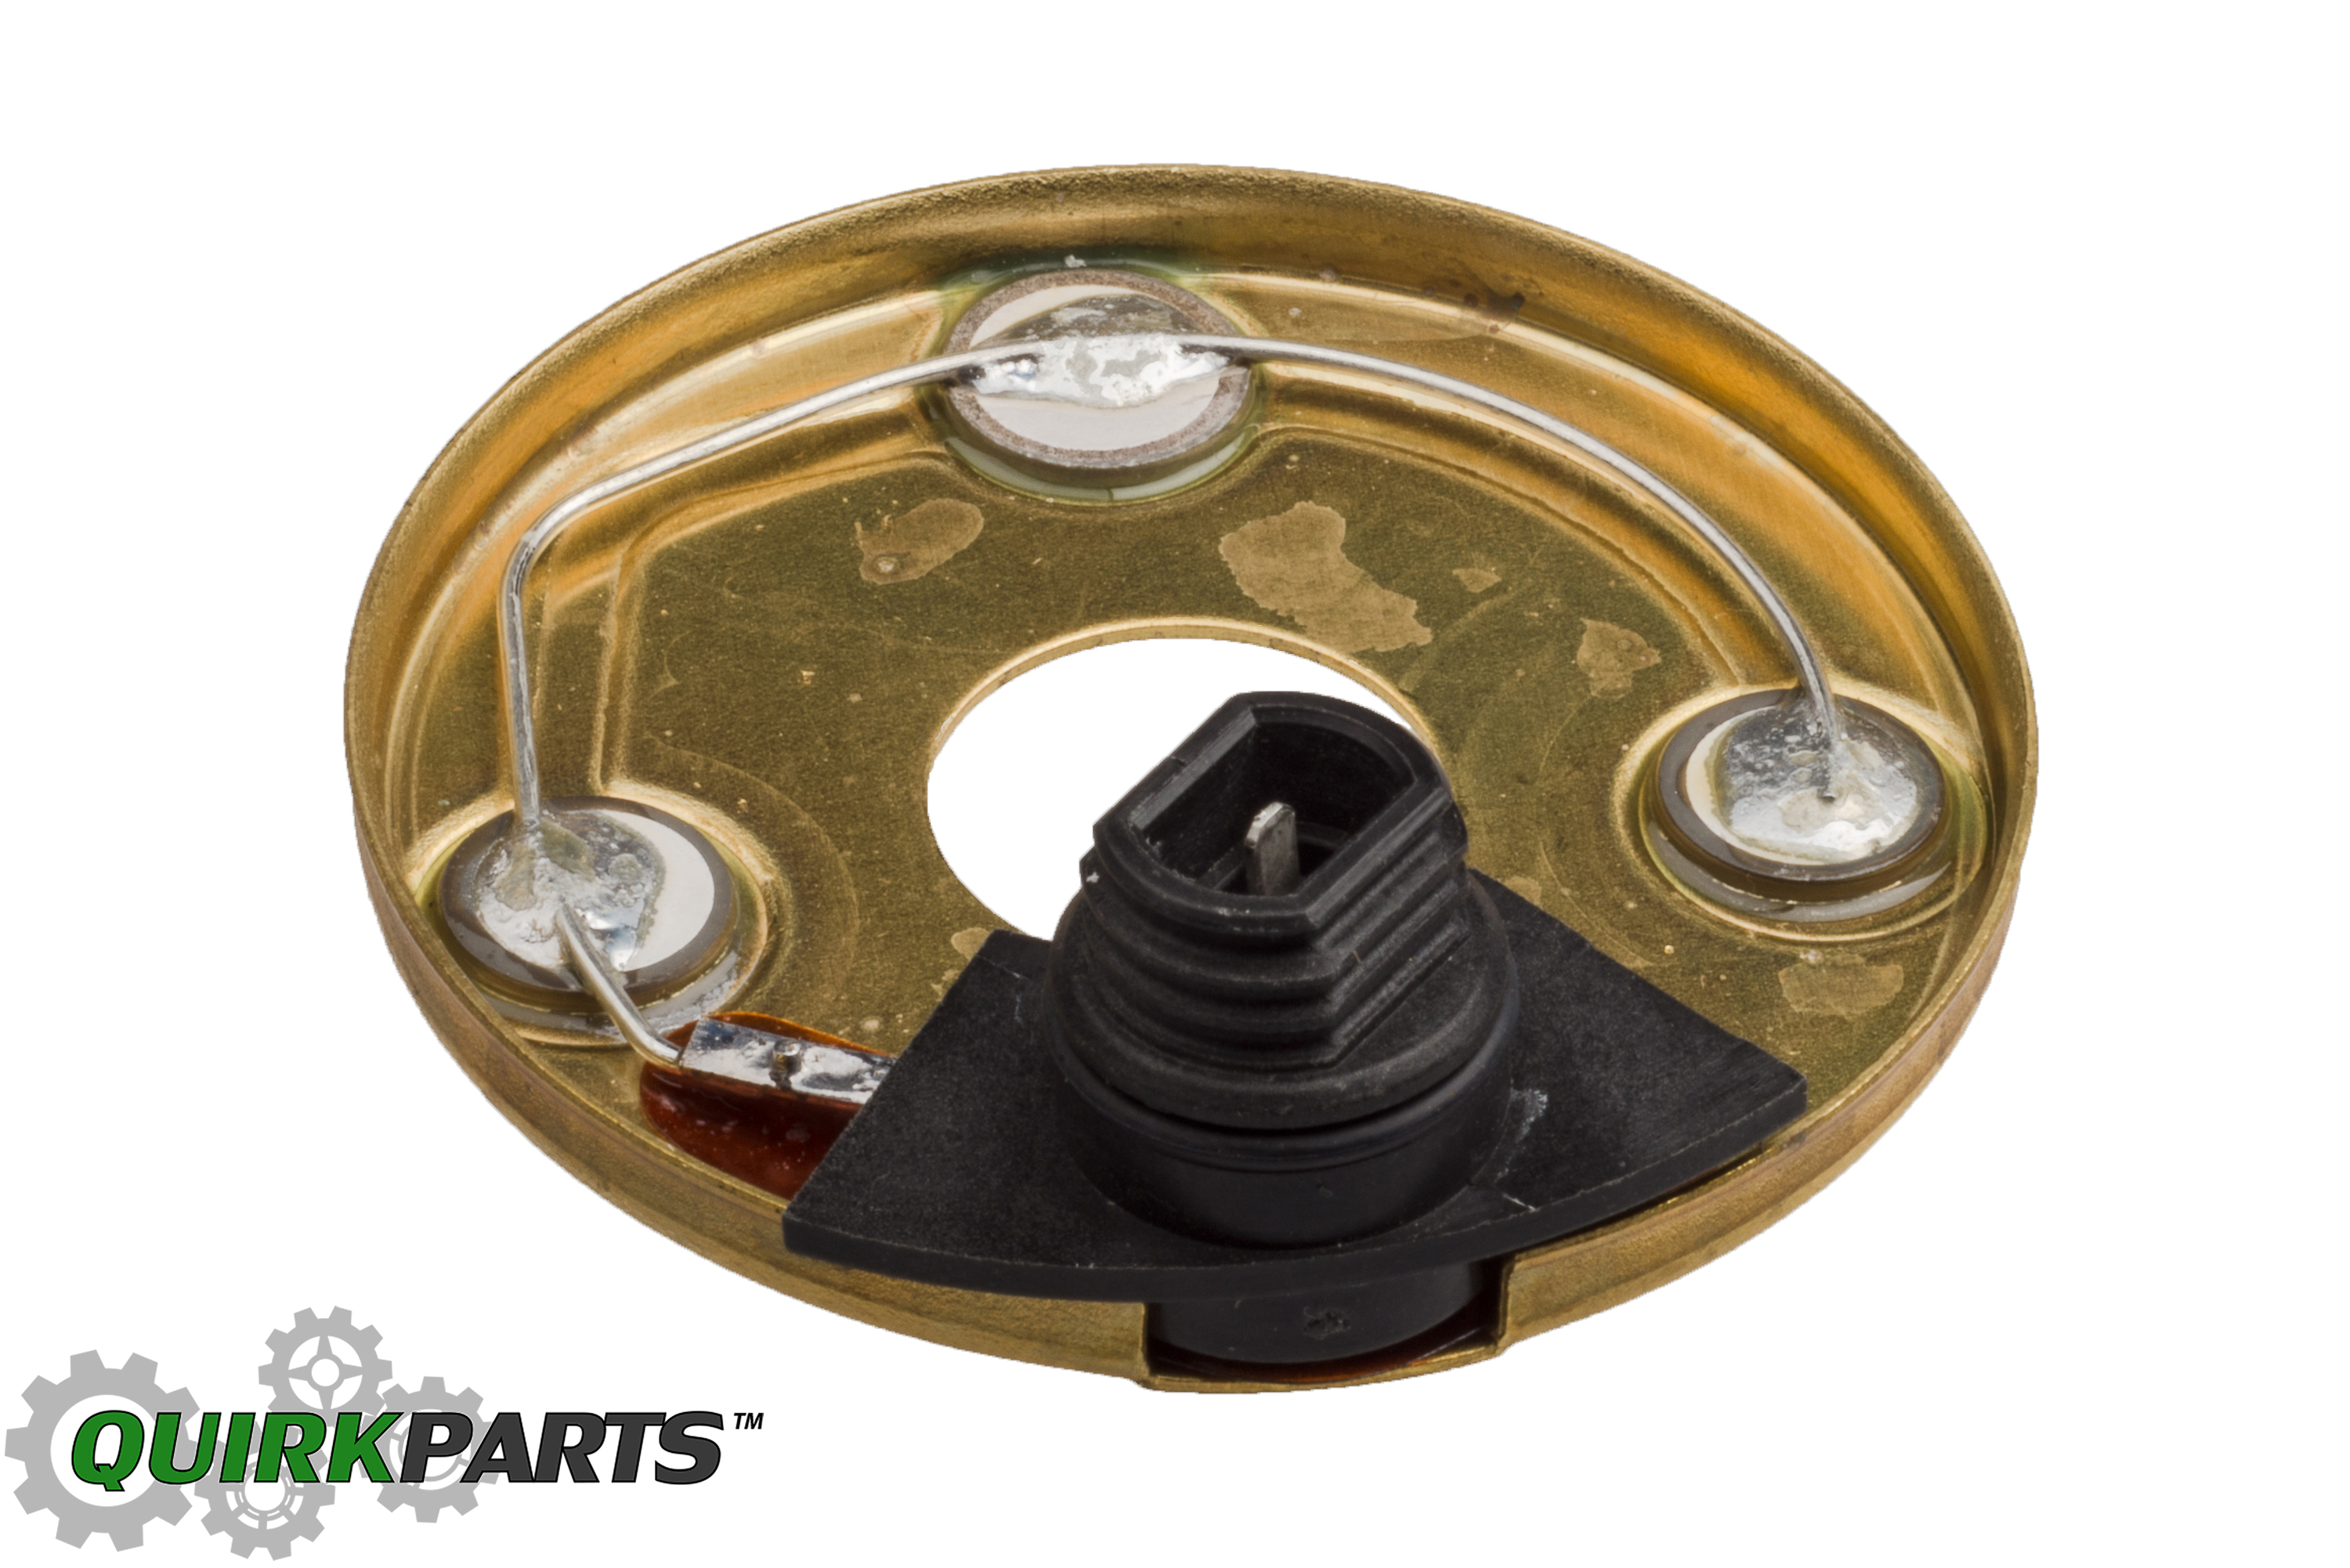 F Tz J A on 1991 Ford F 150 Fuel Filter Location